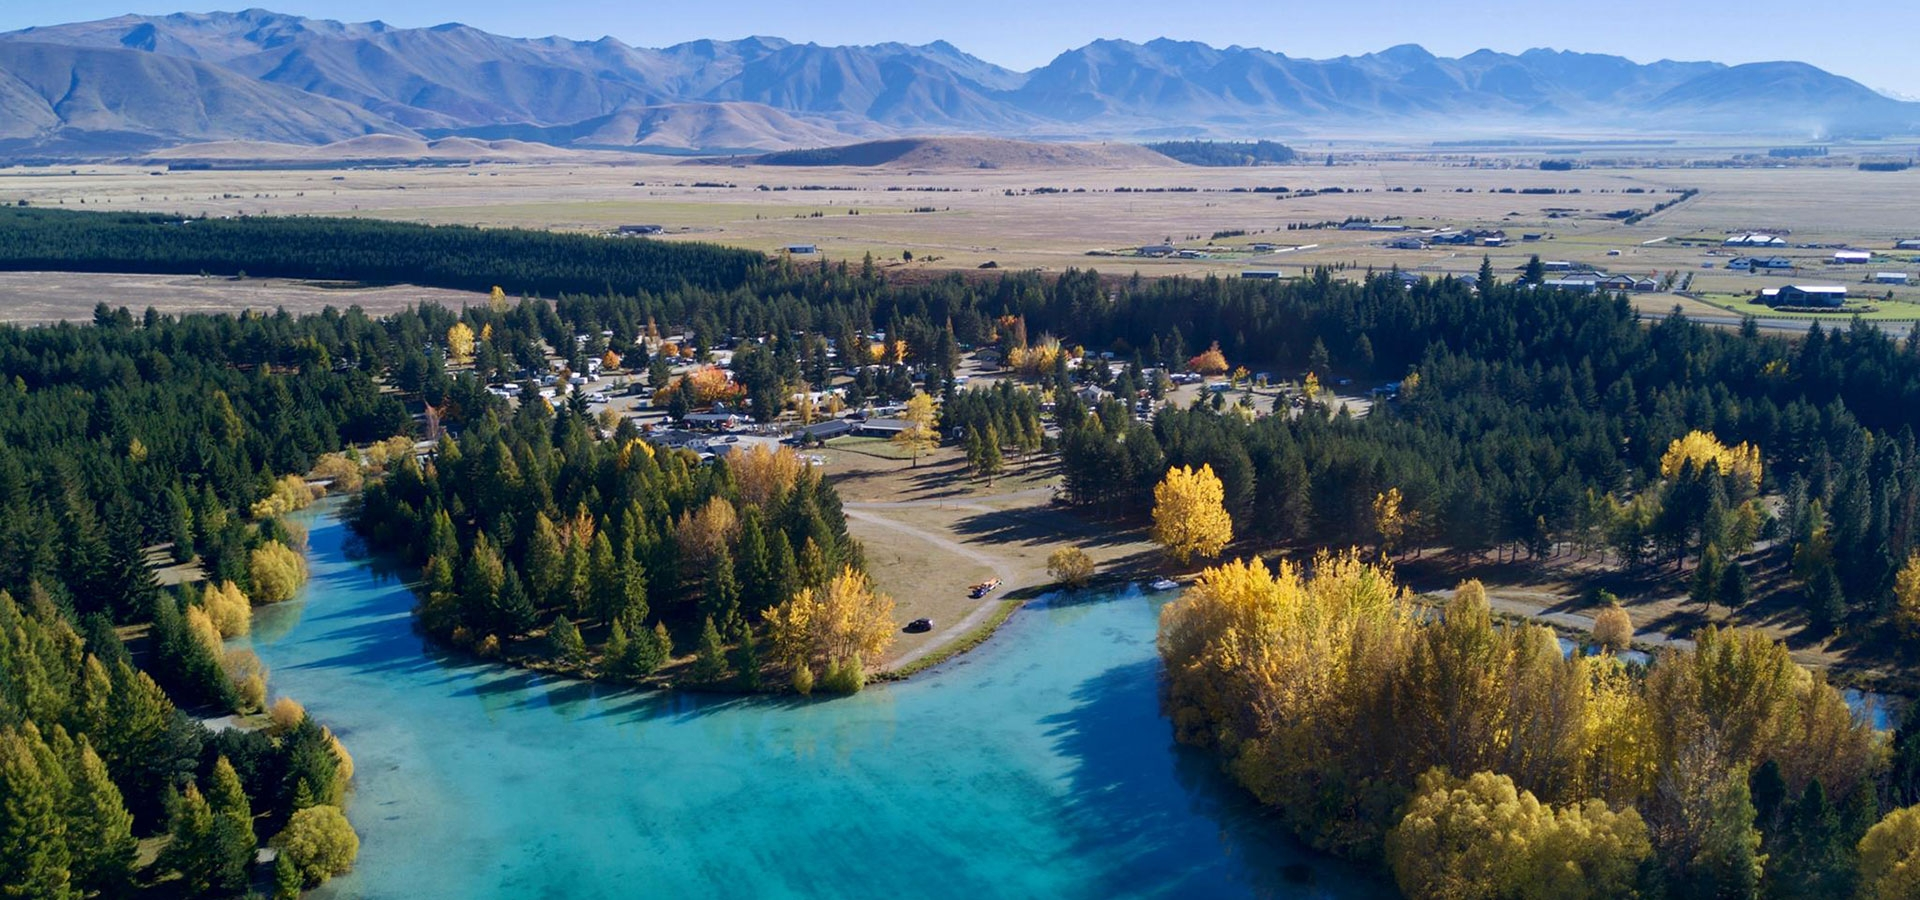 holiday park is located in the heart of Mackenzie Country